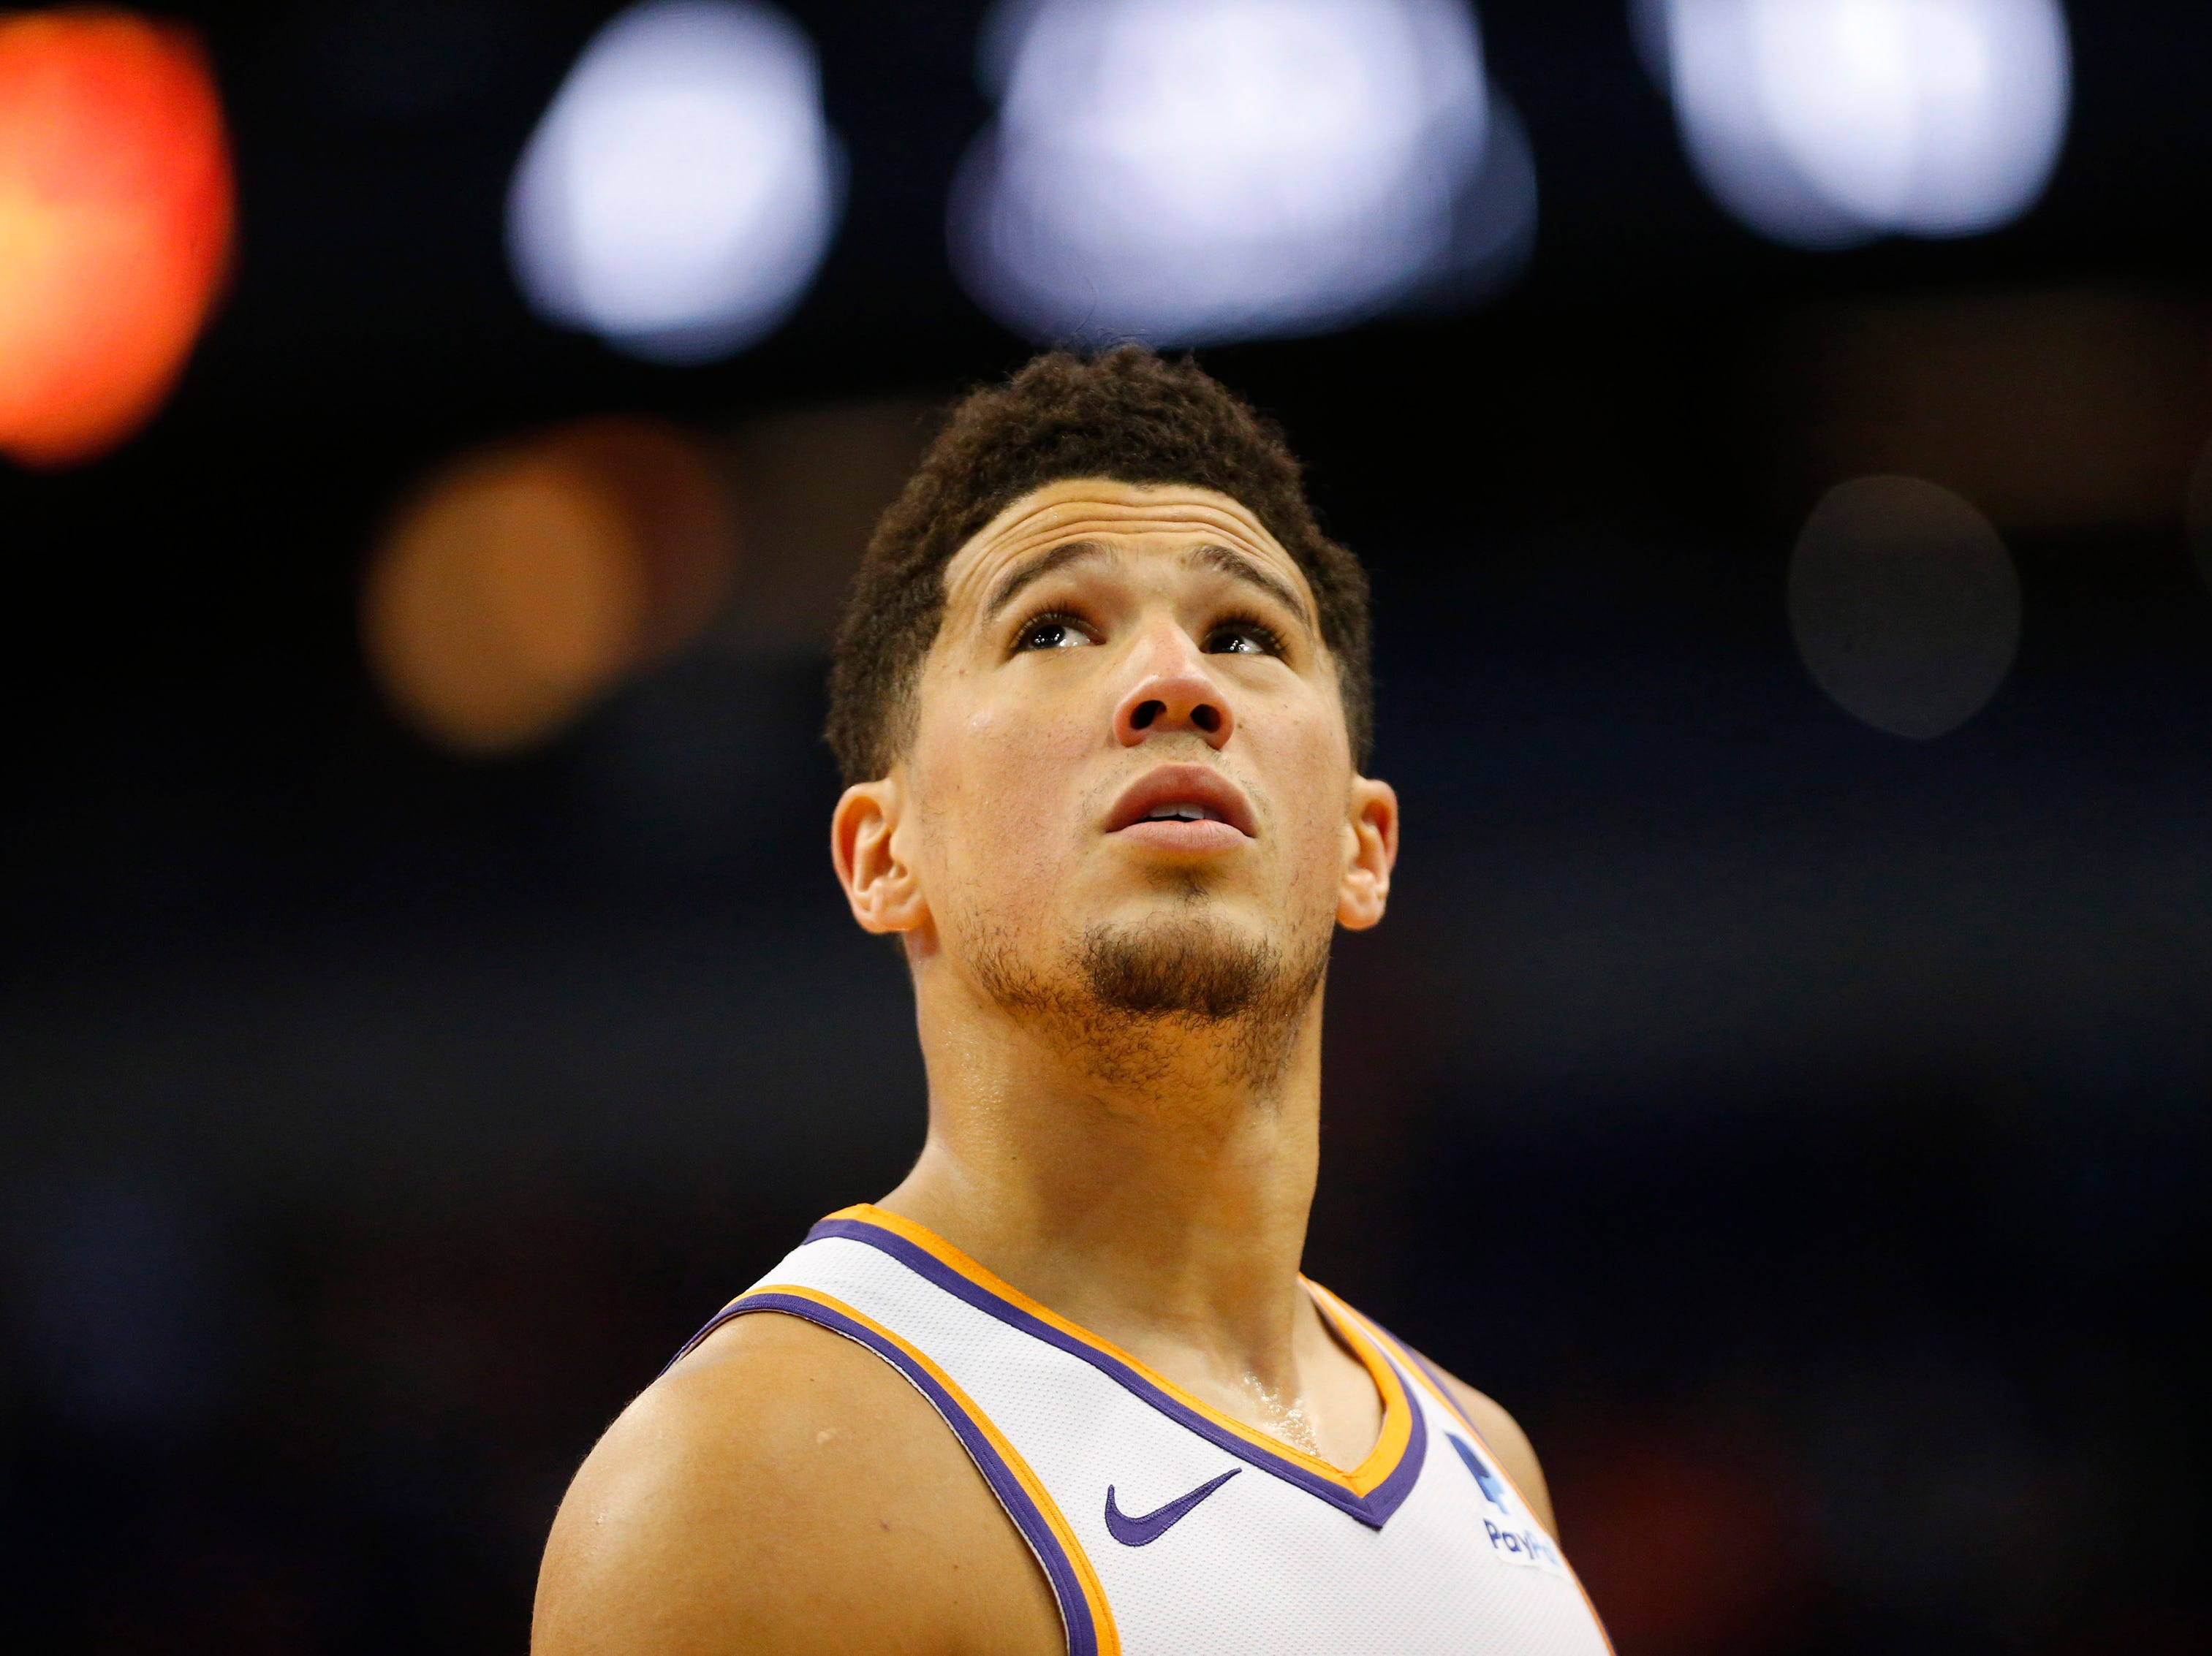 Phoenix Suns guard Devin Booker (1) looks up at the replay board during the first quarter against the New York Knicks in Phoenix March 6, 2019.